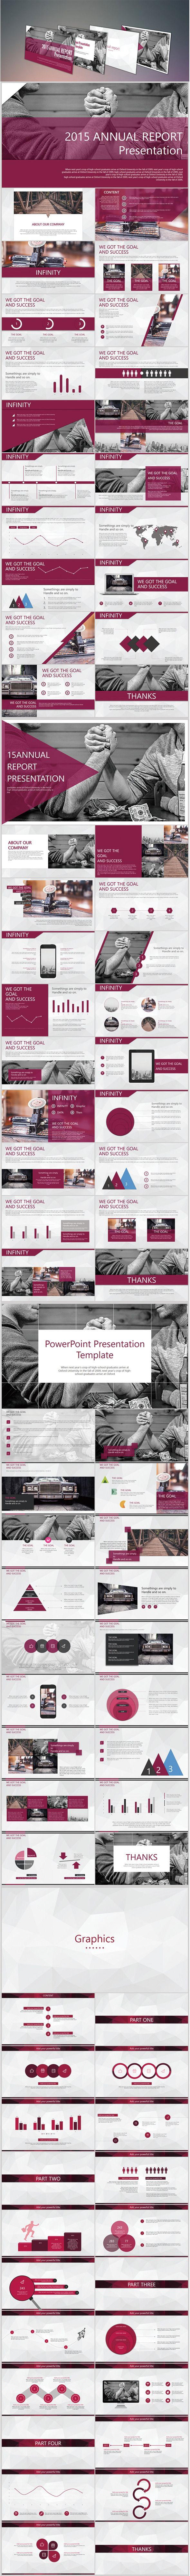 SAM-PowerPoint (PowerPoint Templates) - Stunning Resources for designers - OrTheme